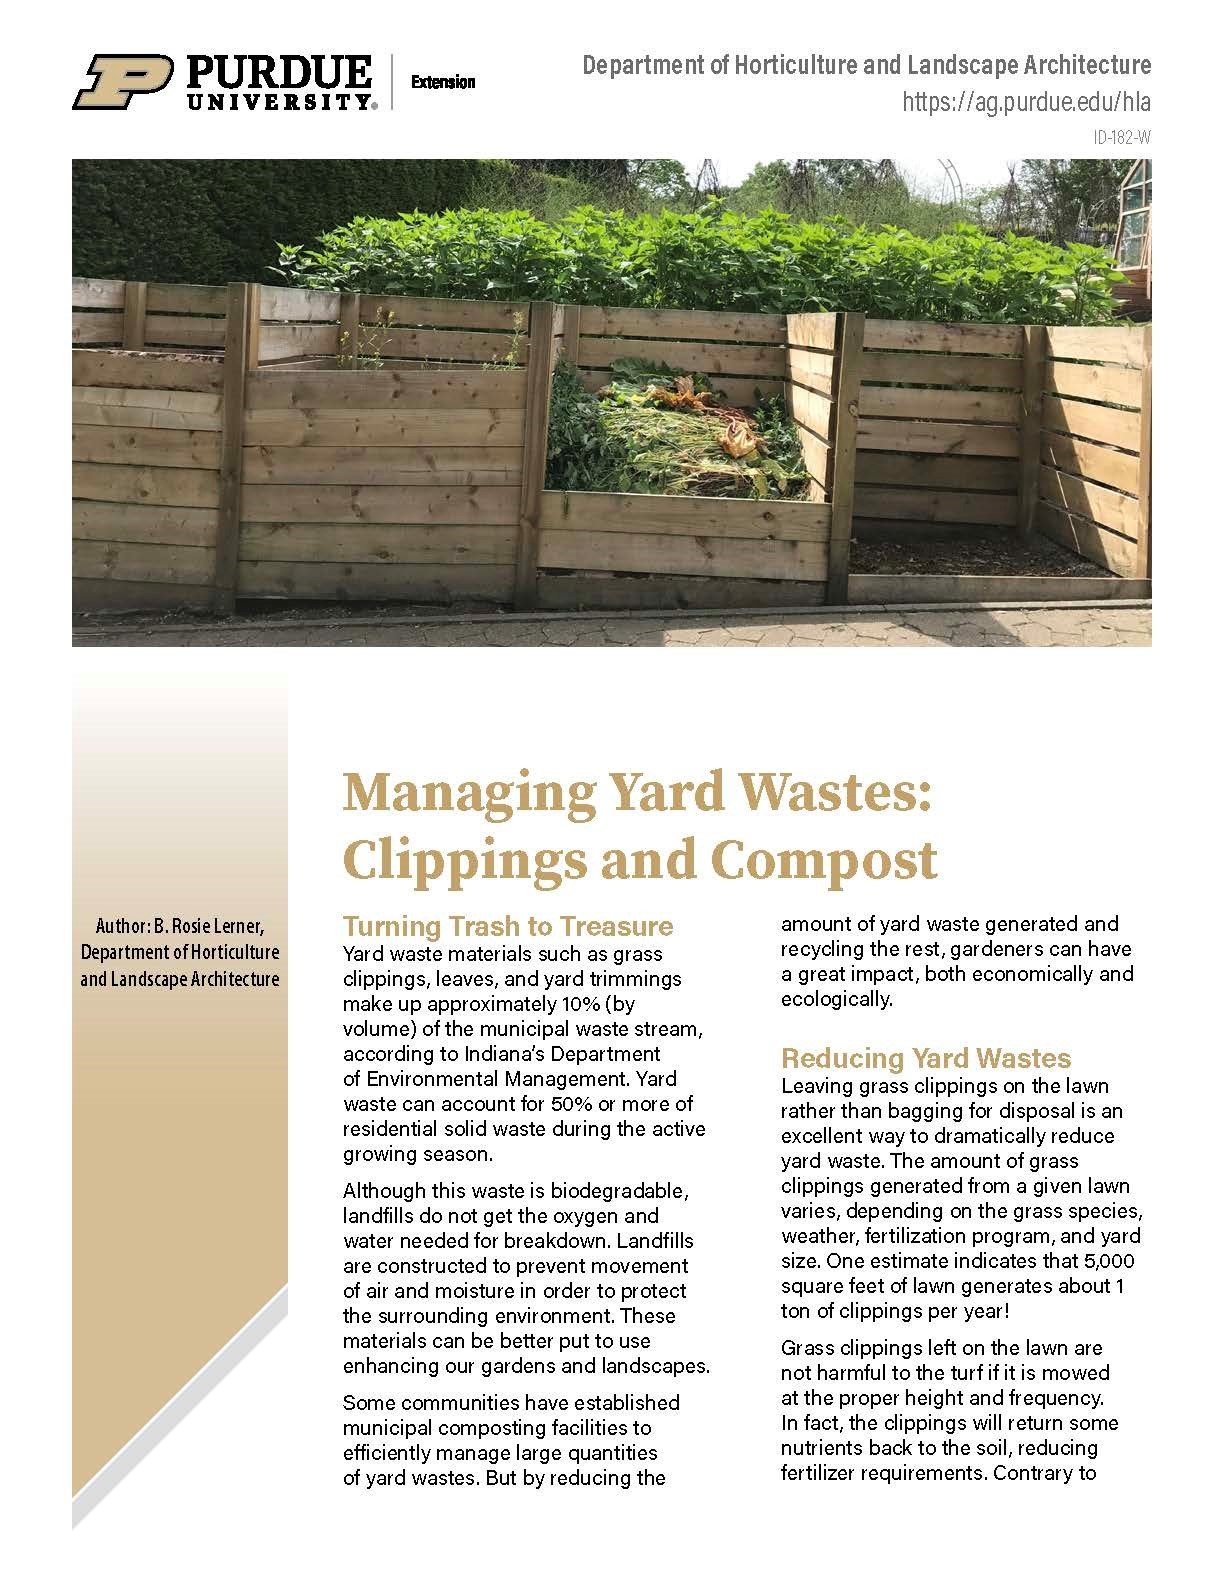 Managing Yard Waste: Clippings and Composting